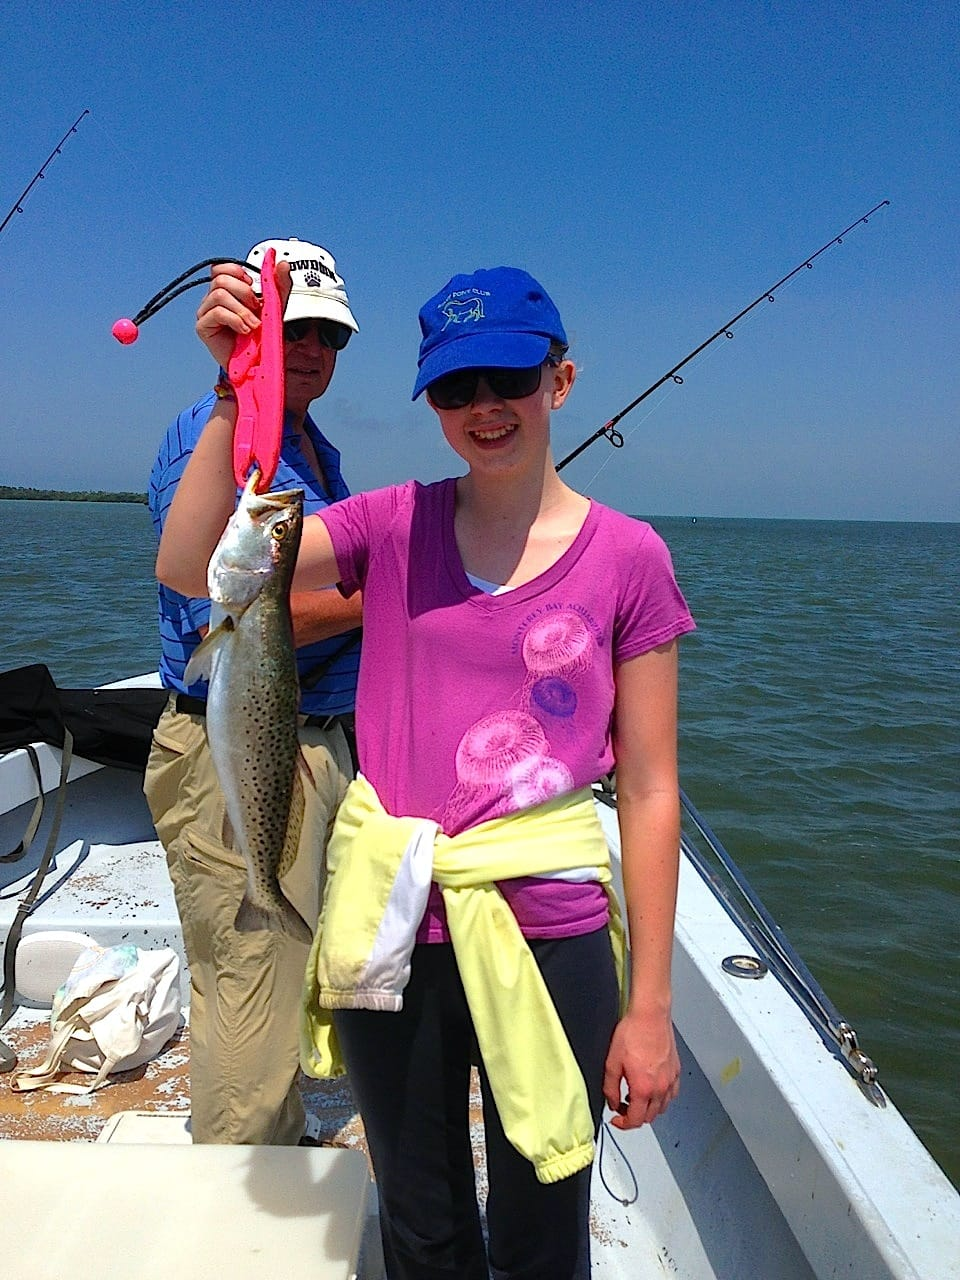 Fort myers 3 23 13 fort myers fishing report off buck for Half day fishing trips fort myers